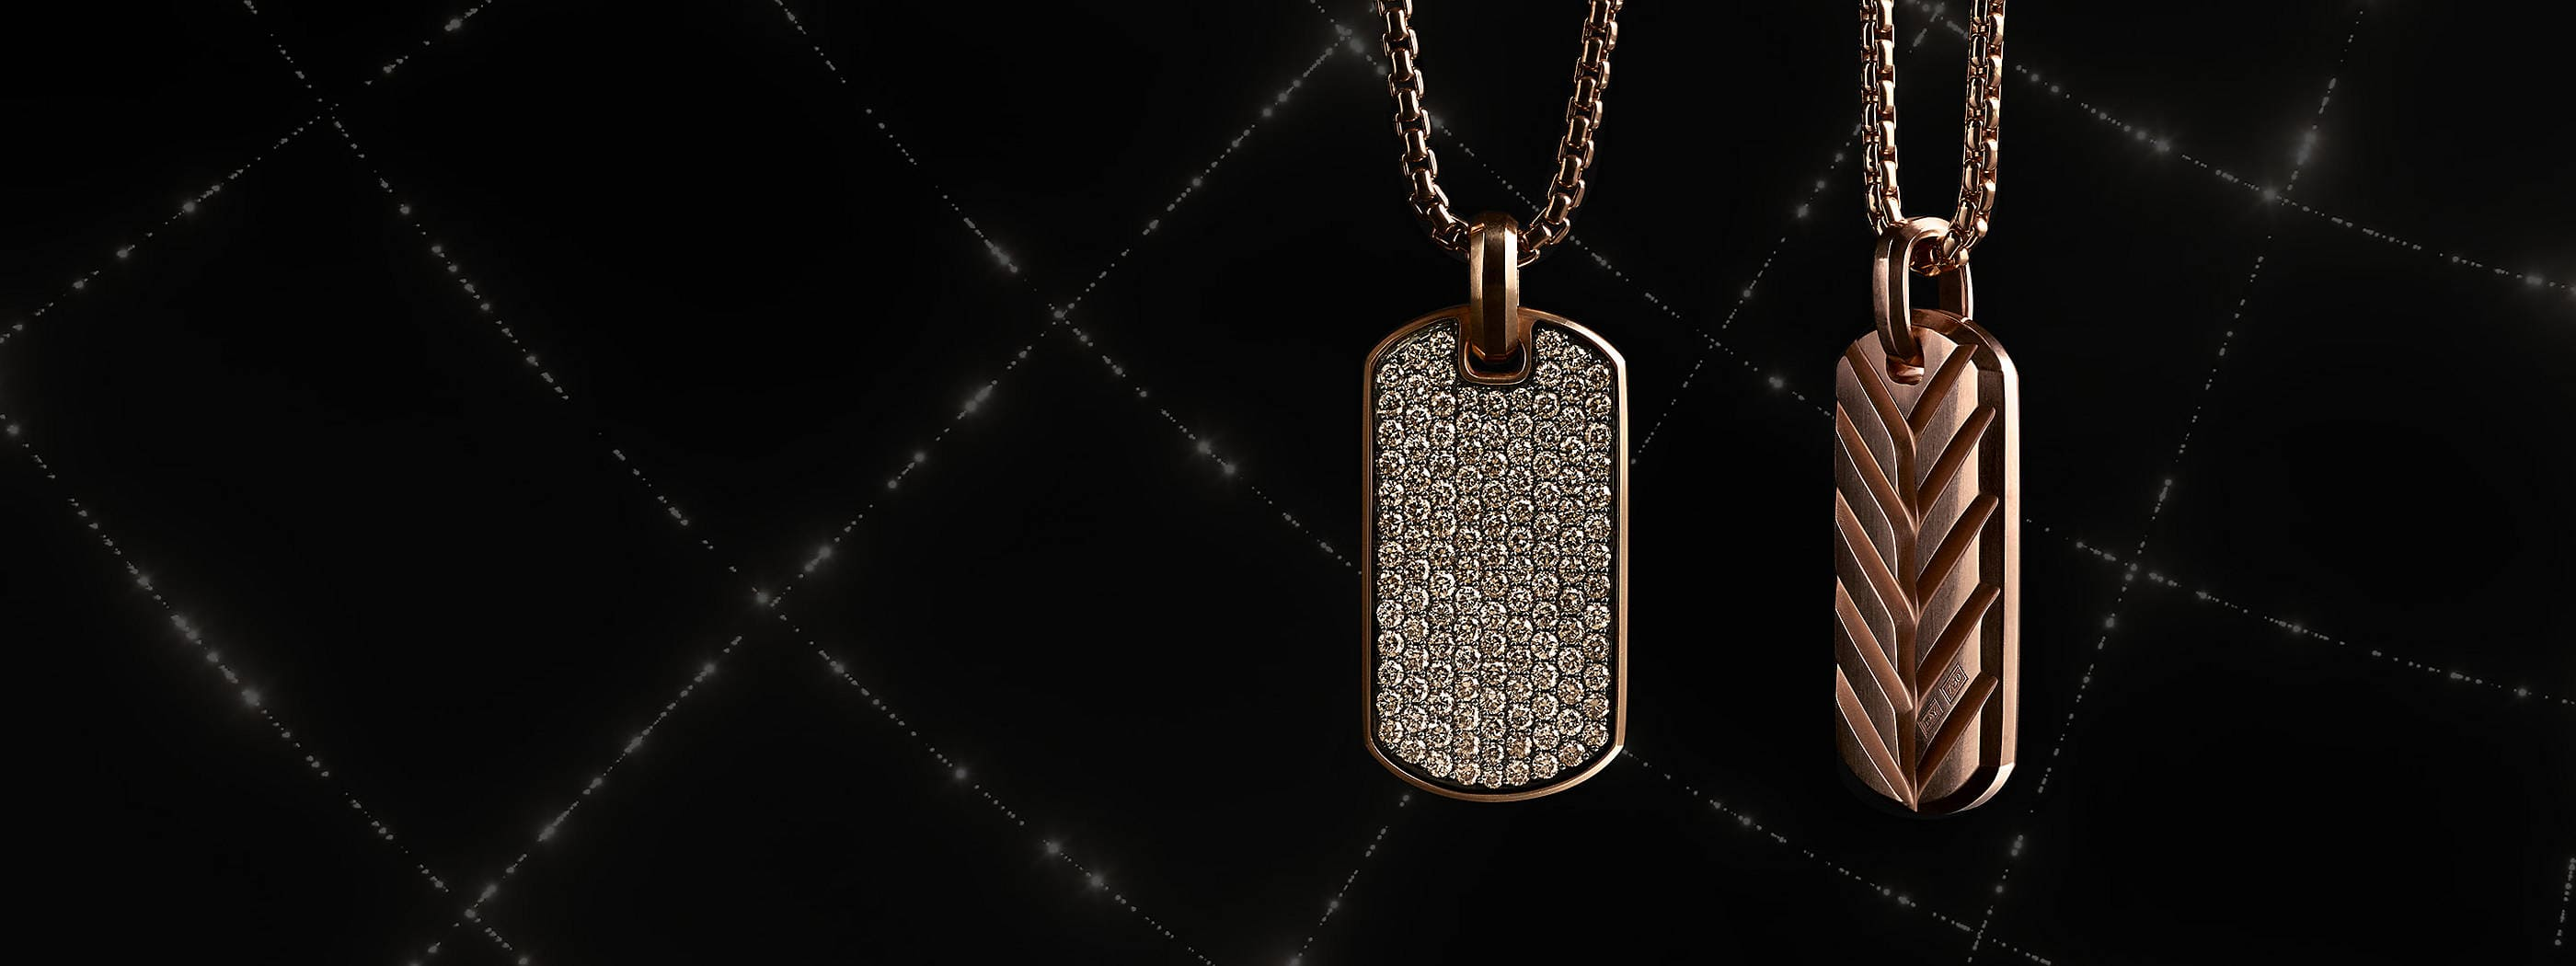 A color photograph shows two David Yurman men's tags and box-chain necklaces hanging in front of a black background with white latitude and longitude lines. The jewelry is crafted from 18K rose gold with pavé cognac diamonds.